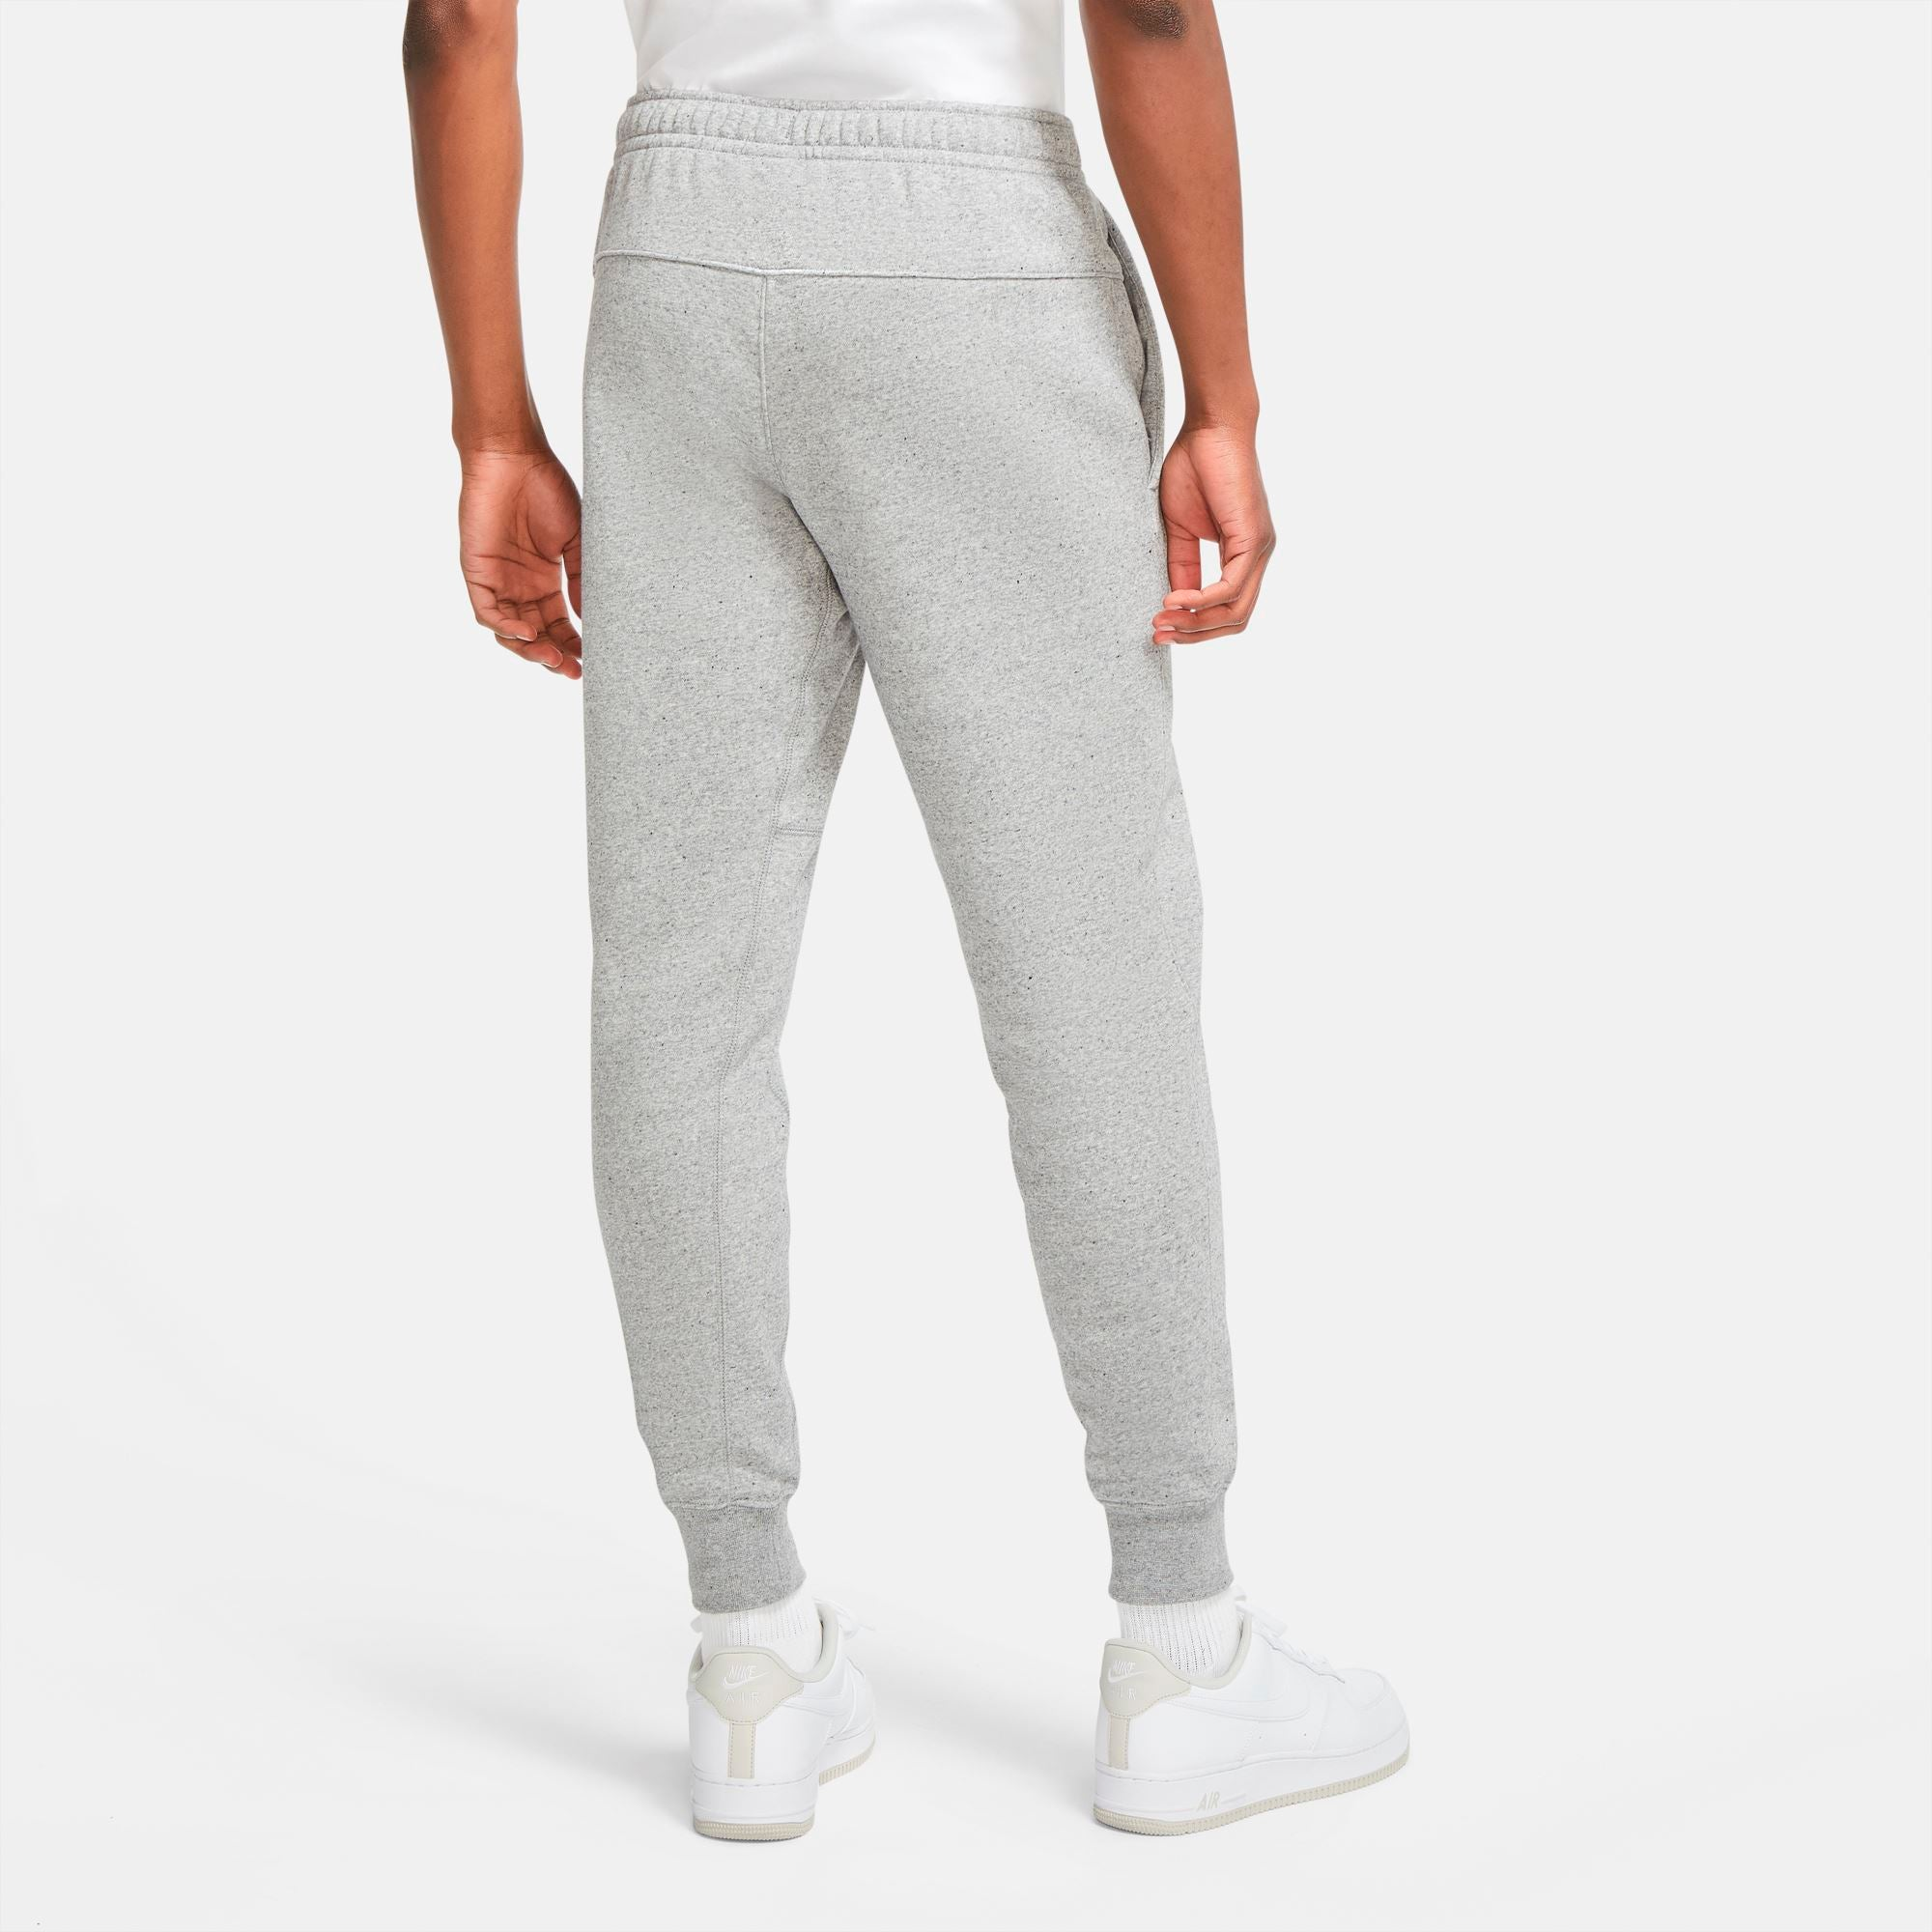 Nike Men's Sportswear Jogger SB - Grey/Multicolour/Black/Multicolour SP-ApparelPants-Mens Nike